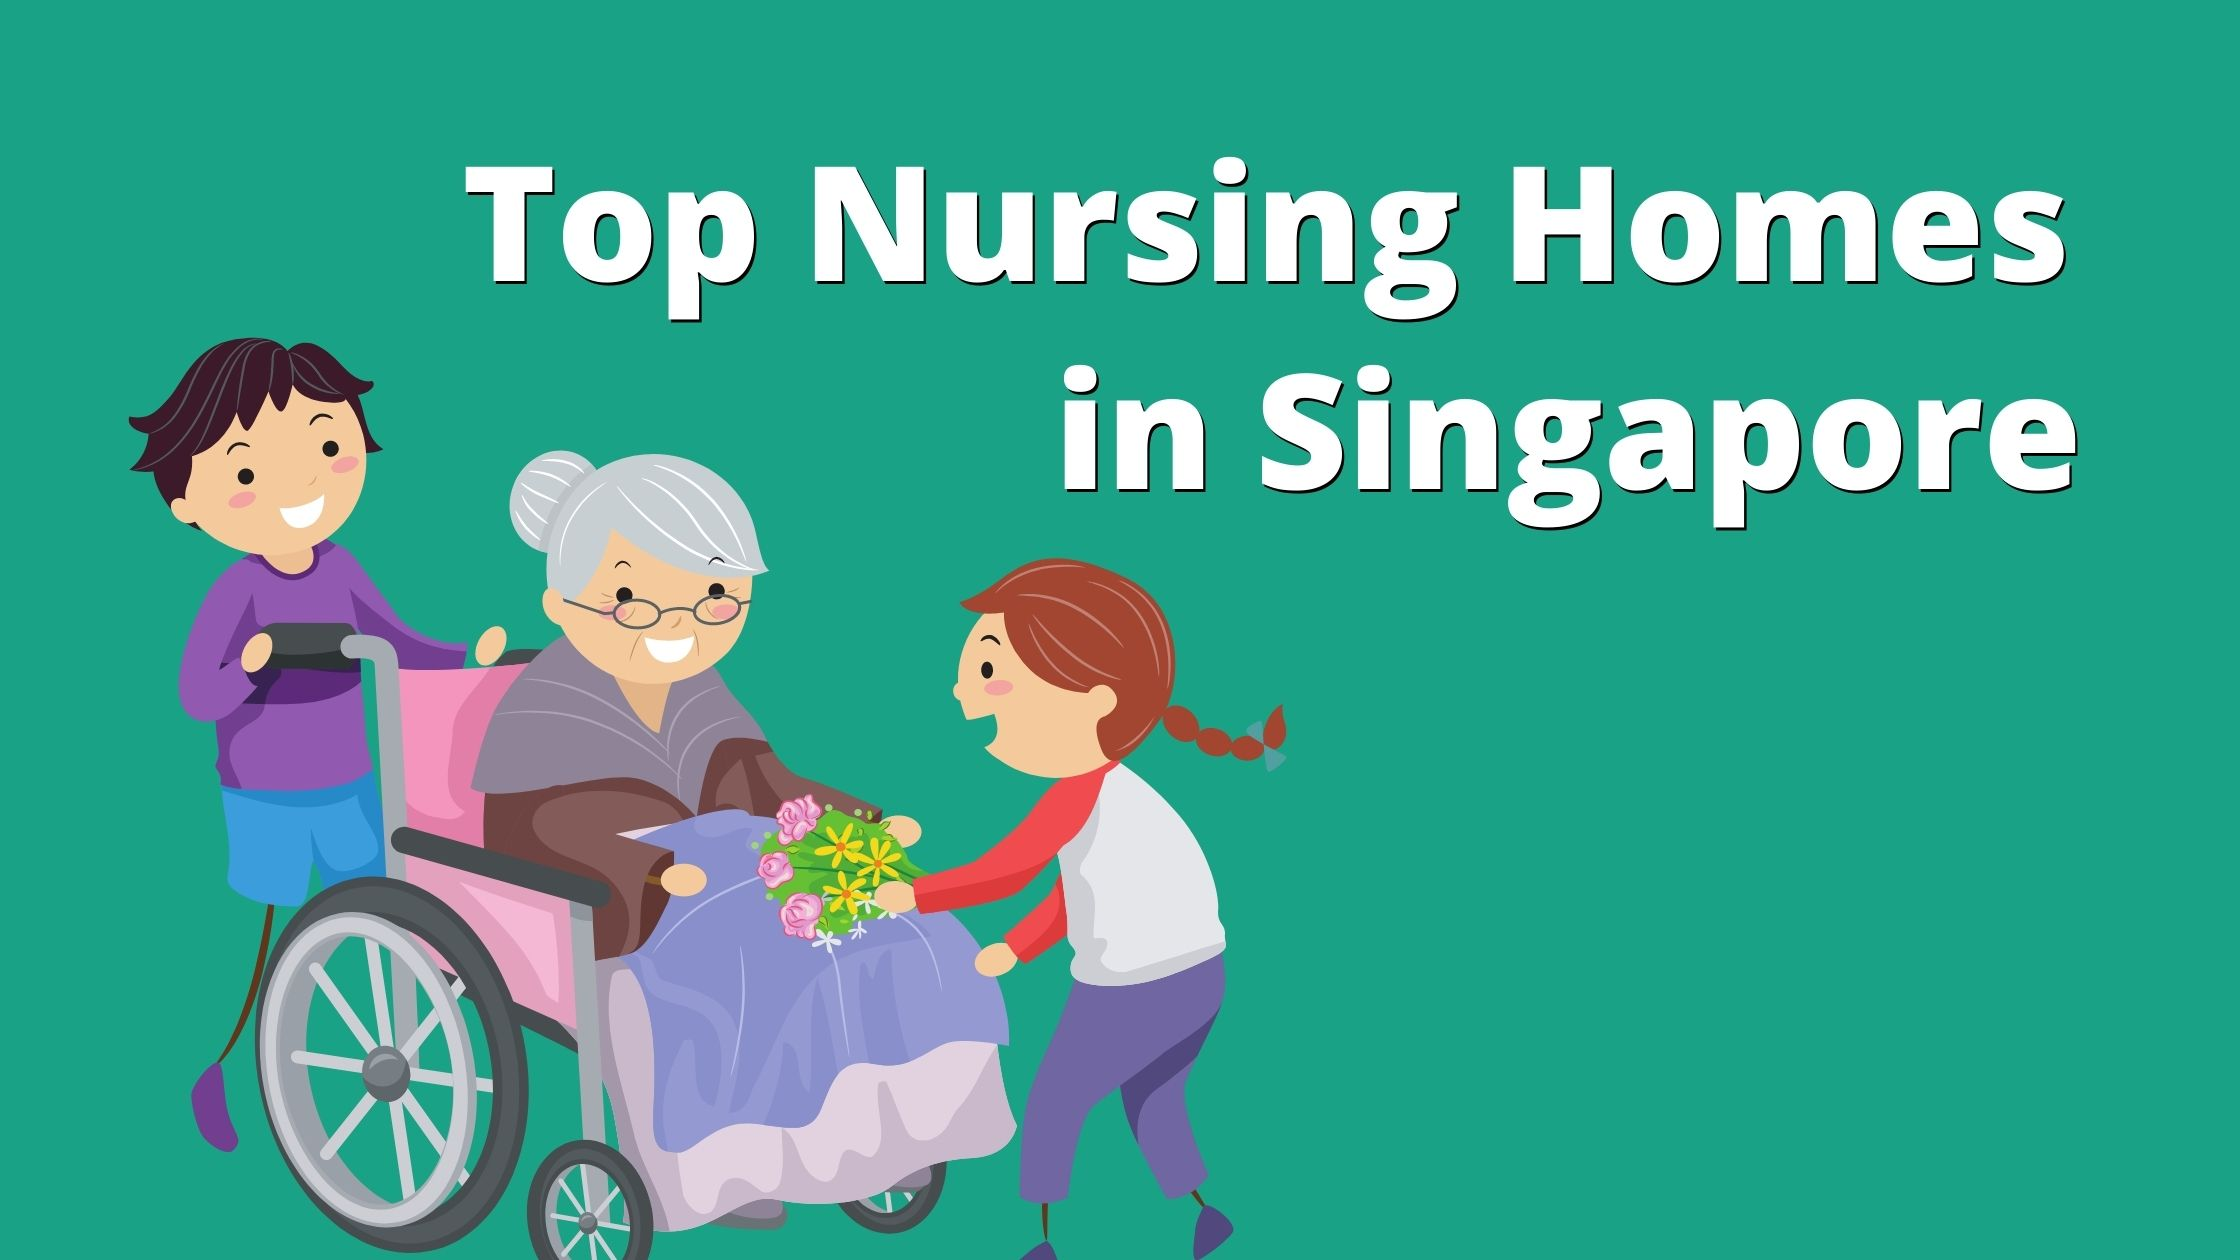 Top Nursing Homes in Singapore